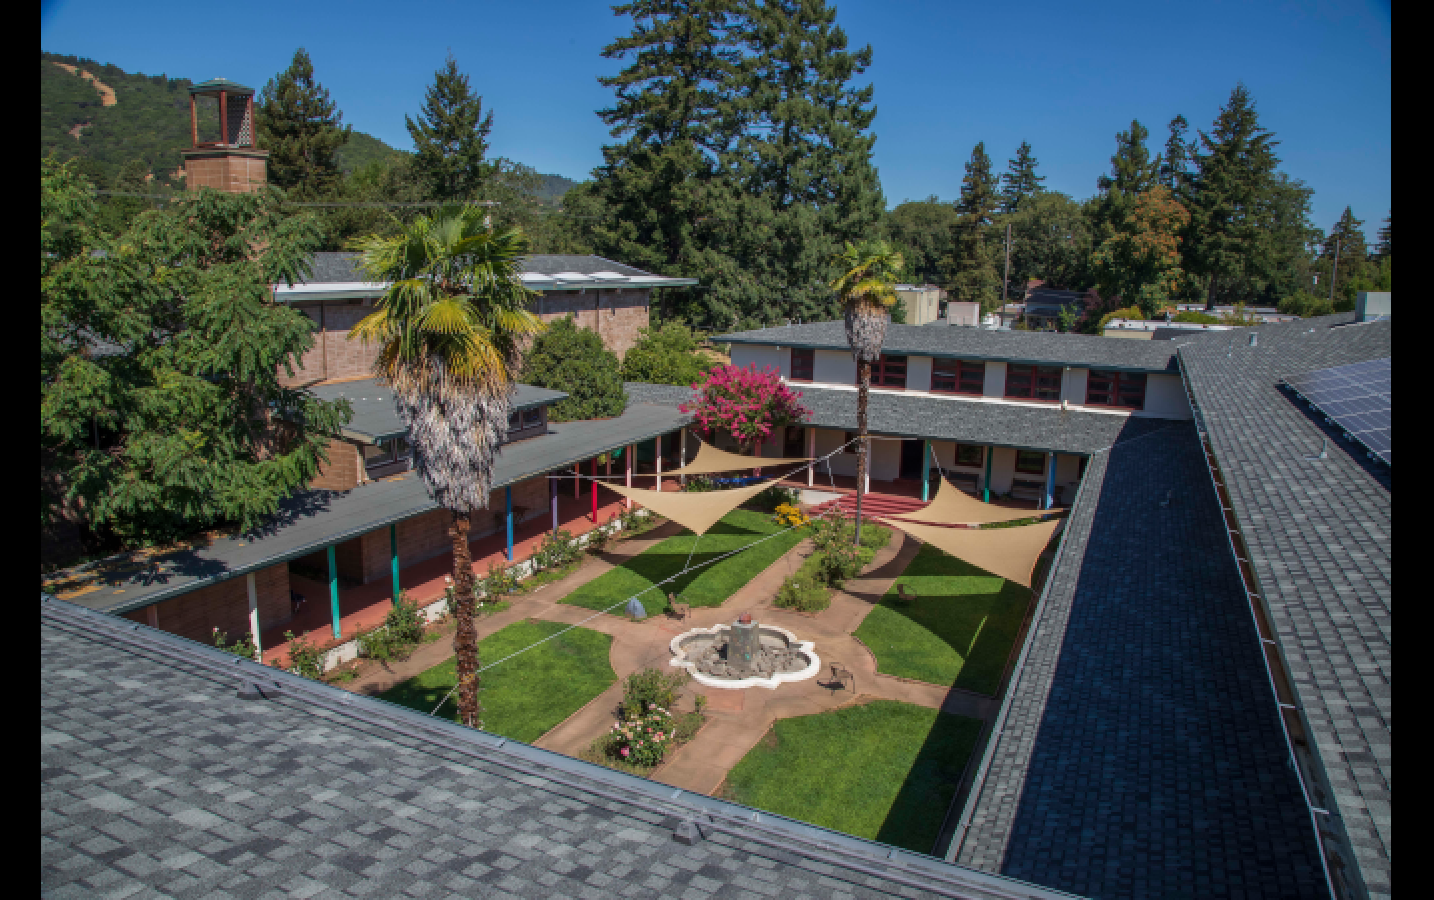 An aerial view of the beautiful Sudhana Center courtyard, complete with new shade sails to help students participate in outdoor gatherings even under the hot August sun.